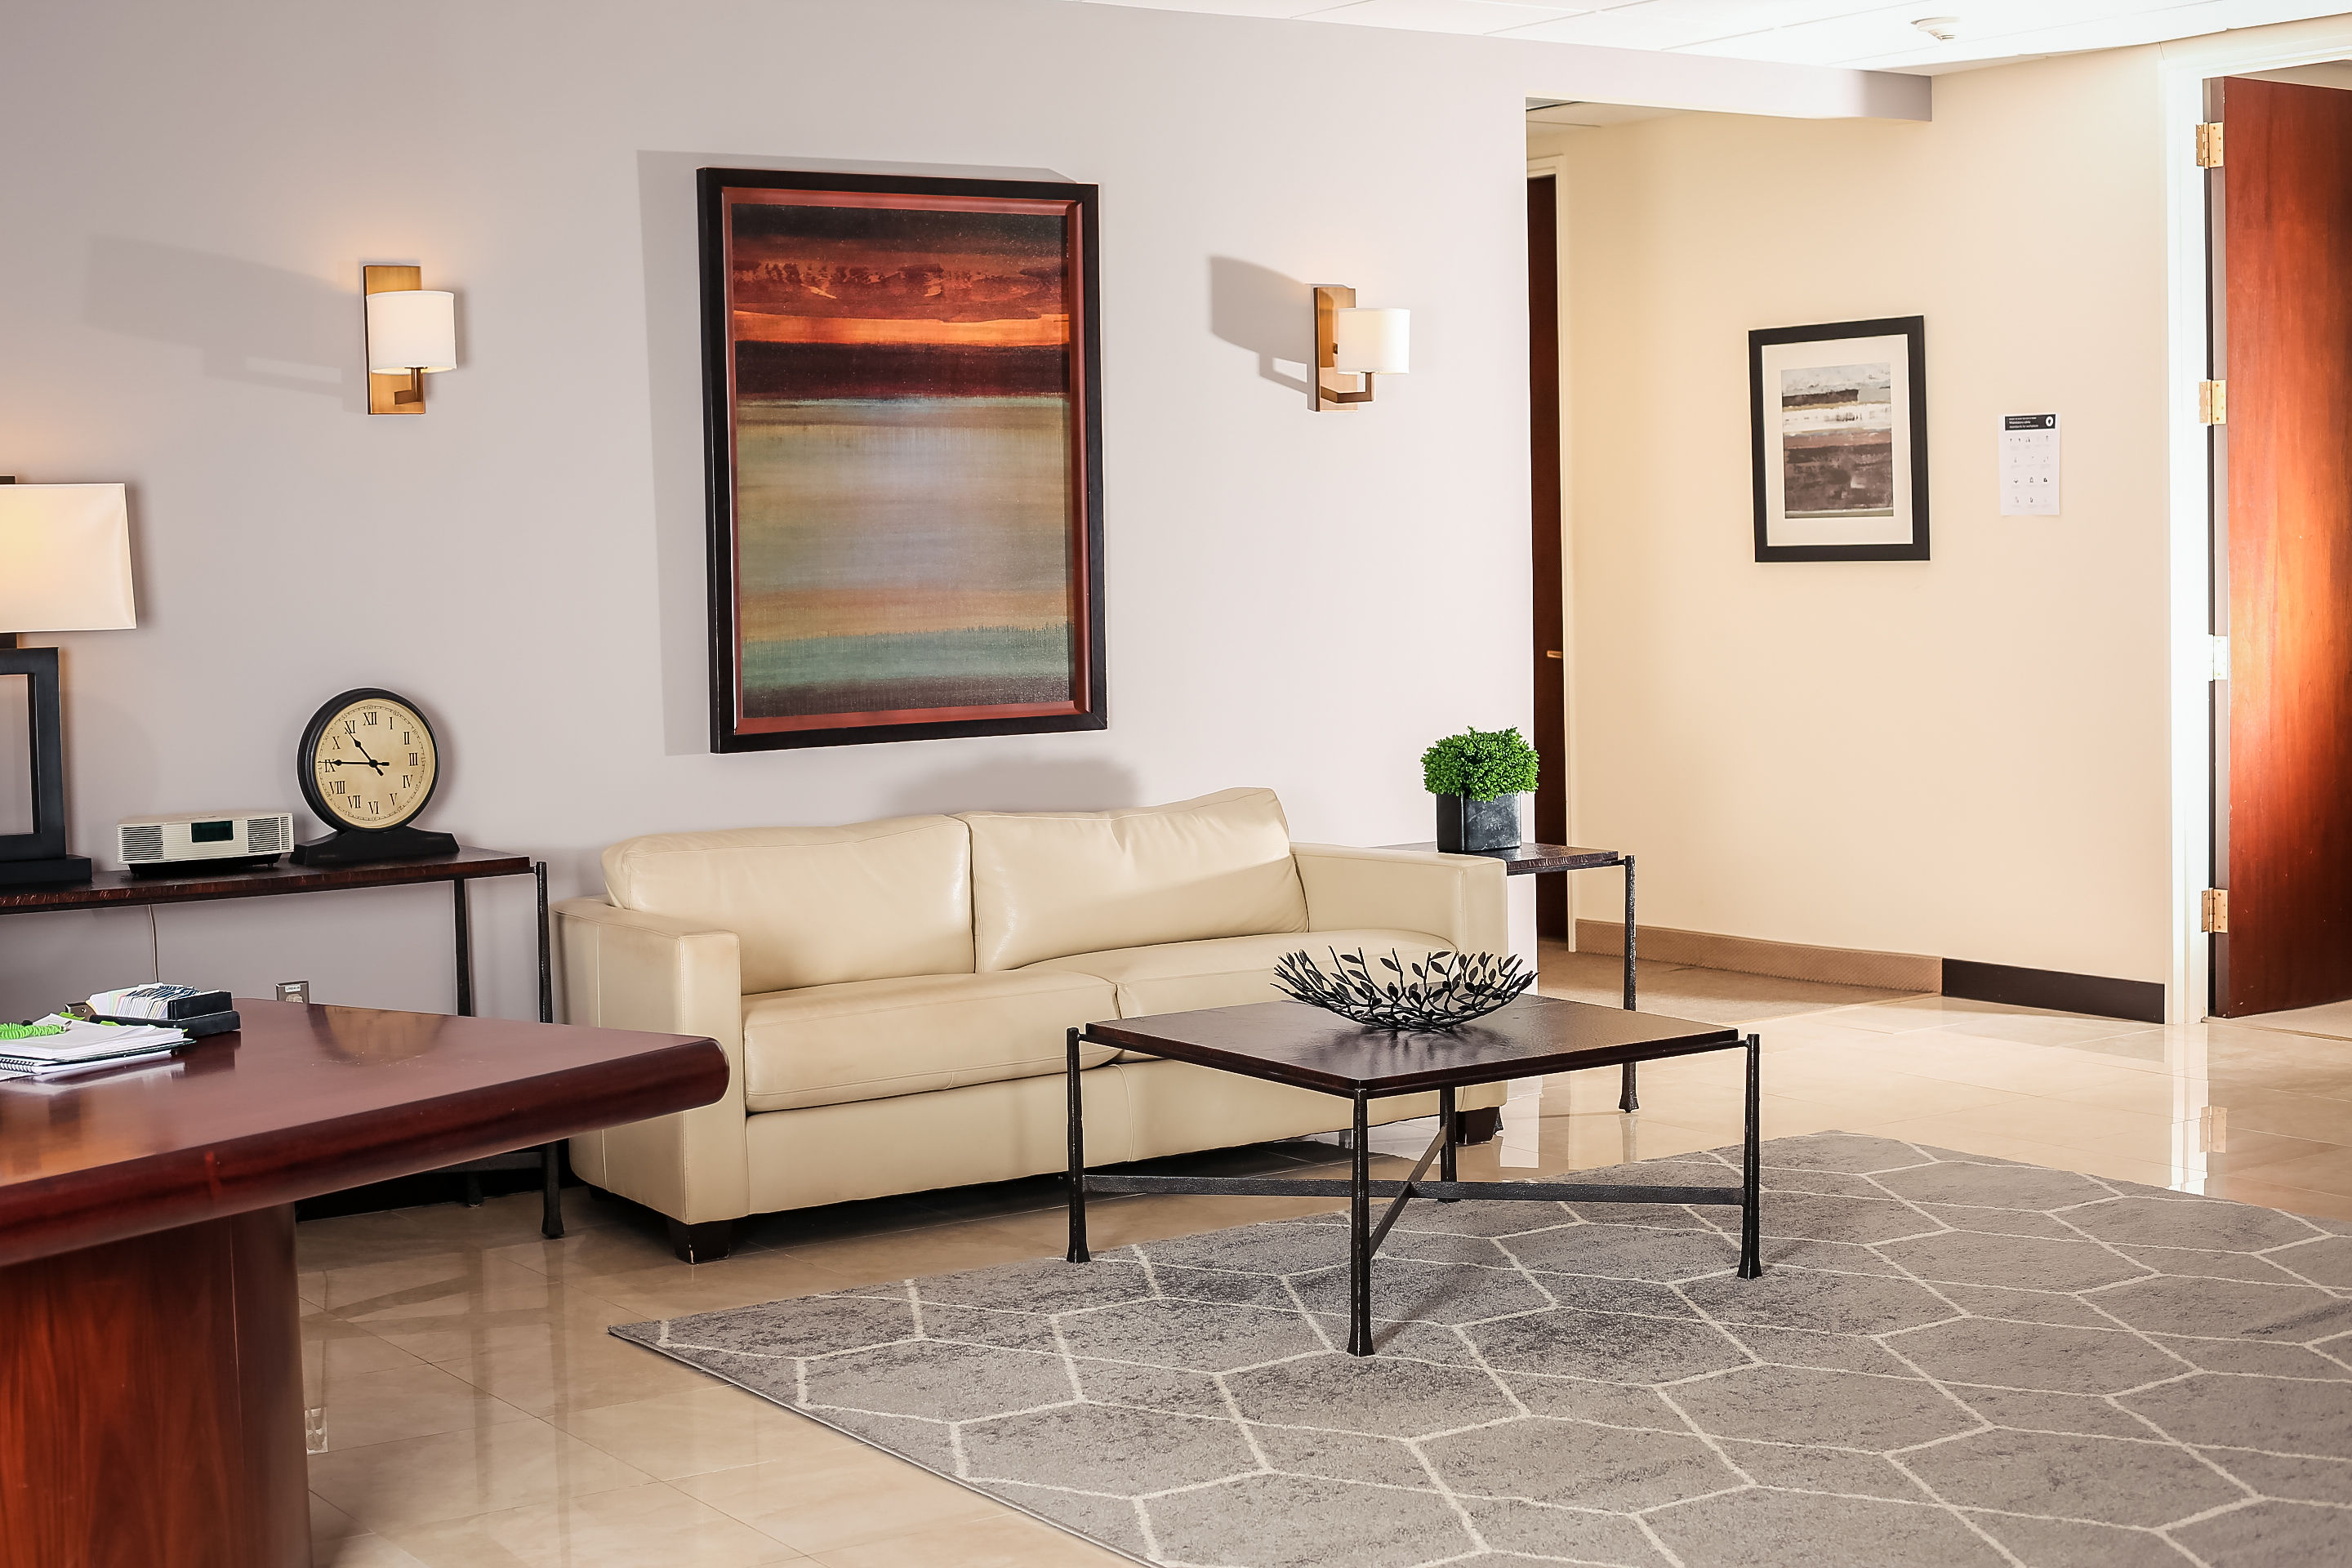 Receptionist Lobby - Virtual Offices in Framingham